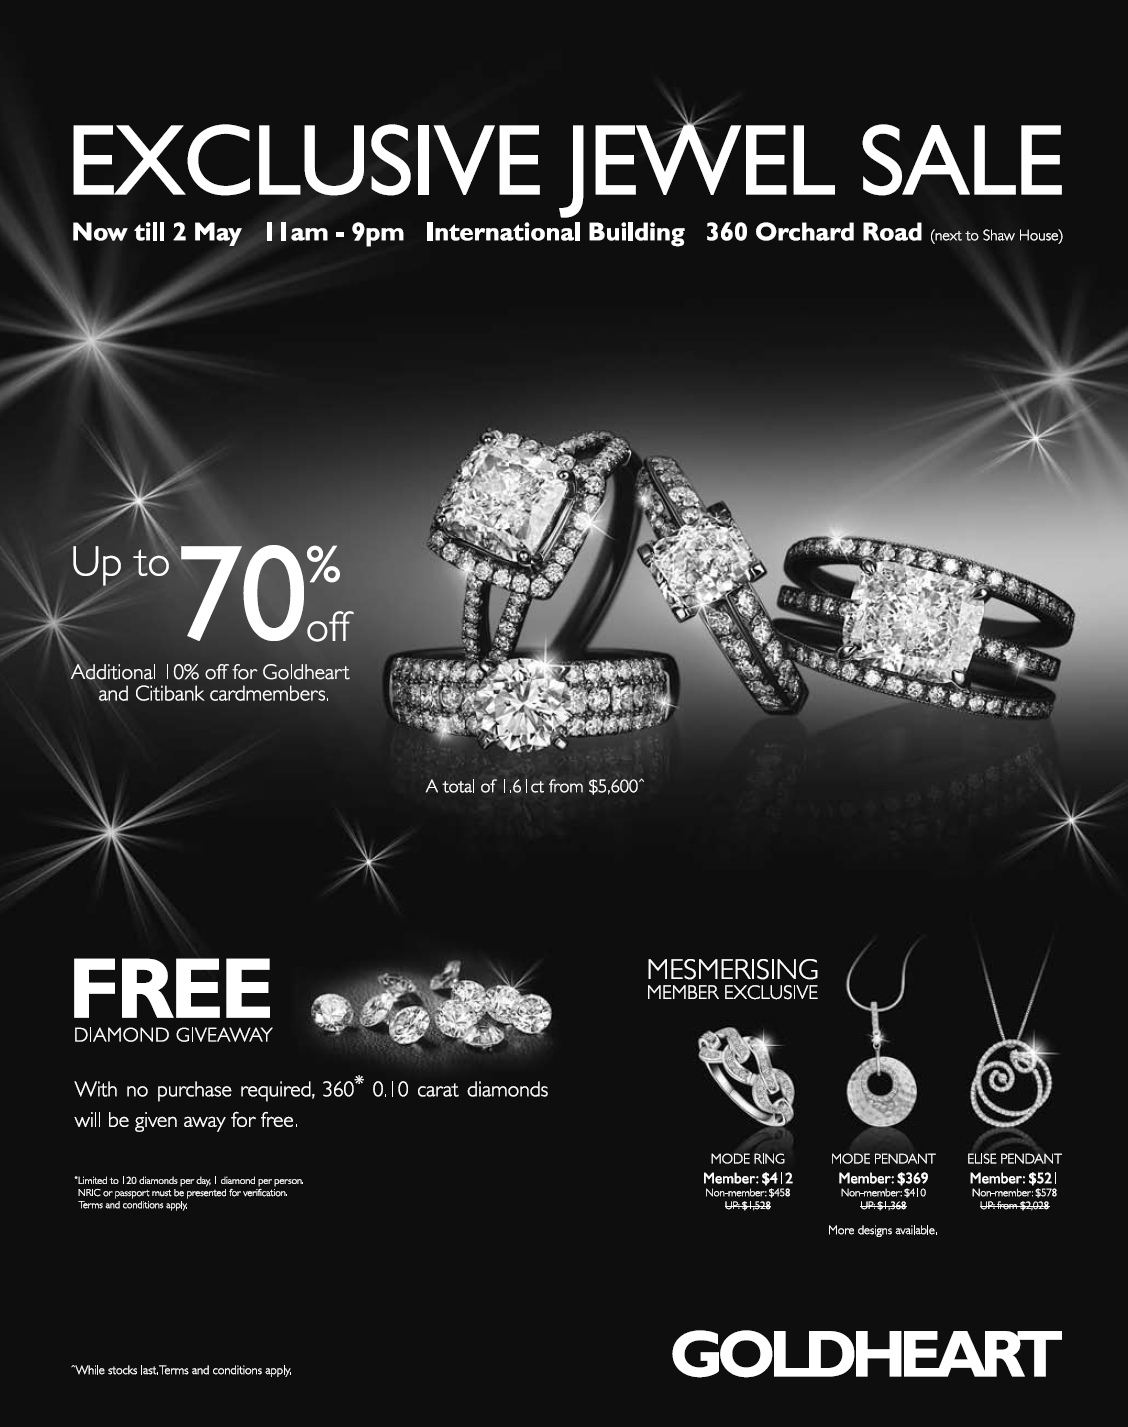 GoldHeart Exclusive Jewelry Sale